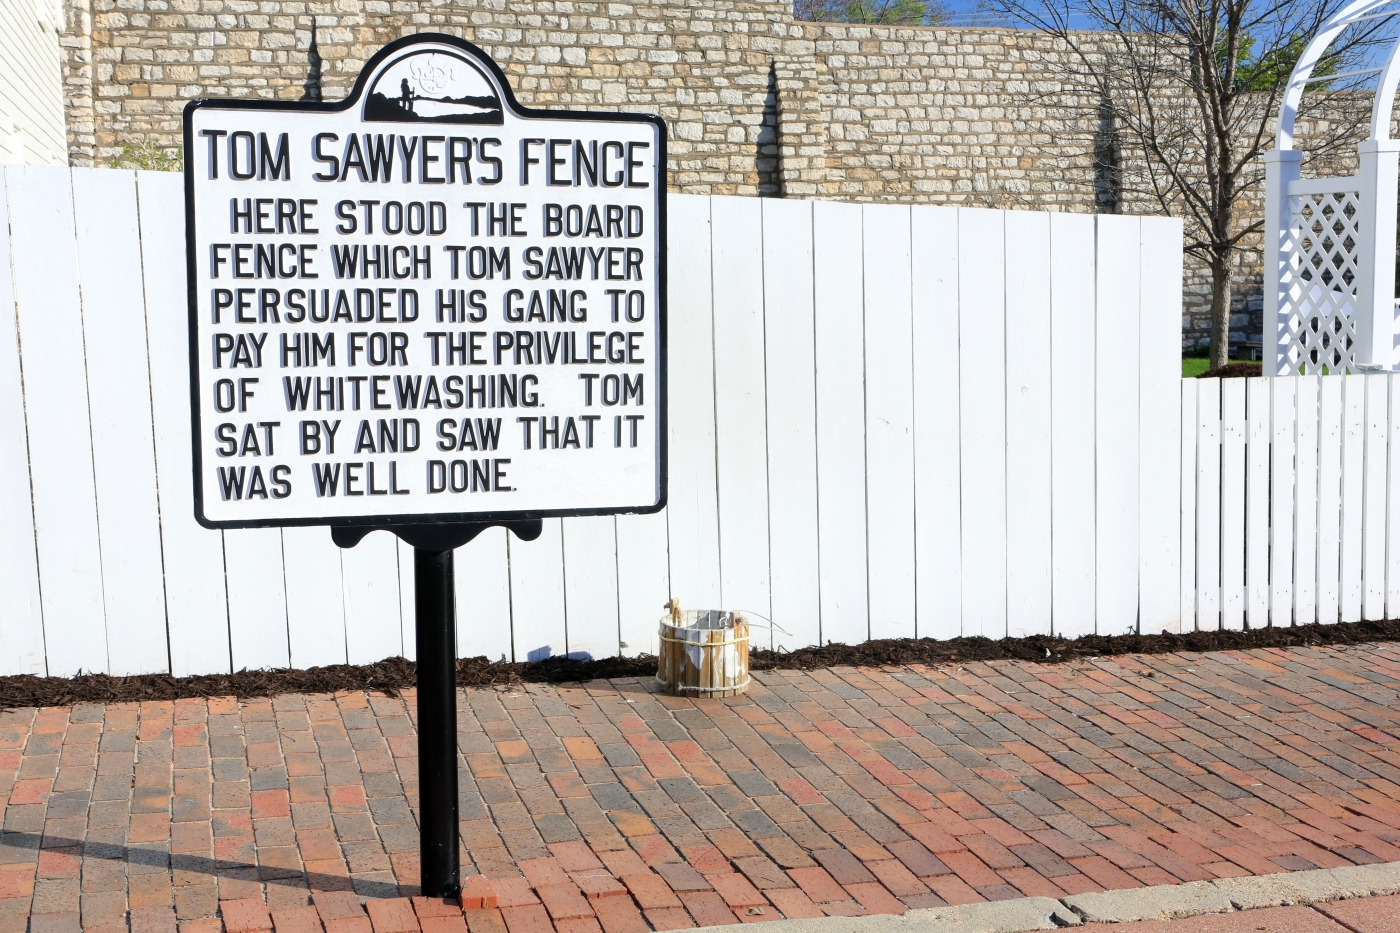 Tom Sawyer's white fence at the Mark Twain Boyhood Home & Museum.